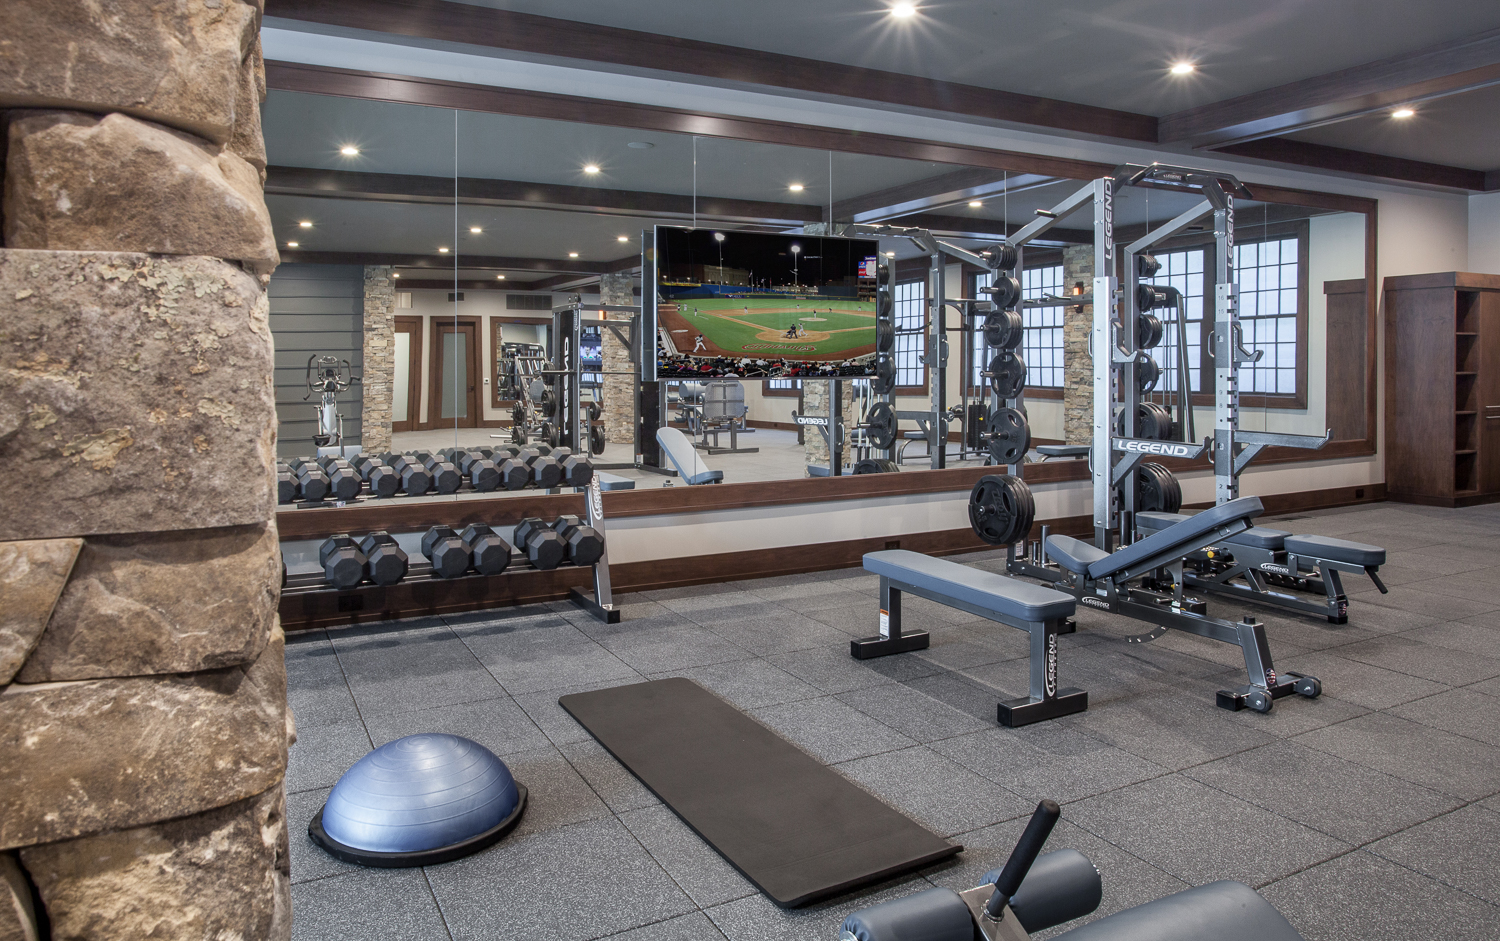 Home Gym Exercise Room - Fuchsia Design, Scott Christopher Homes, Sears Architects